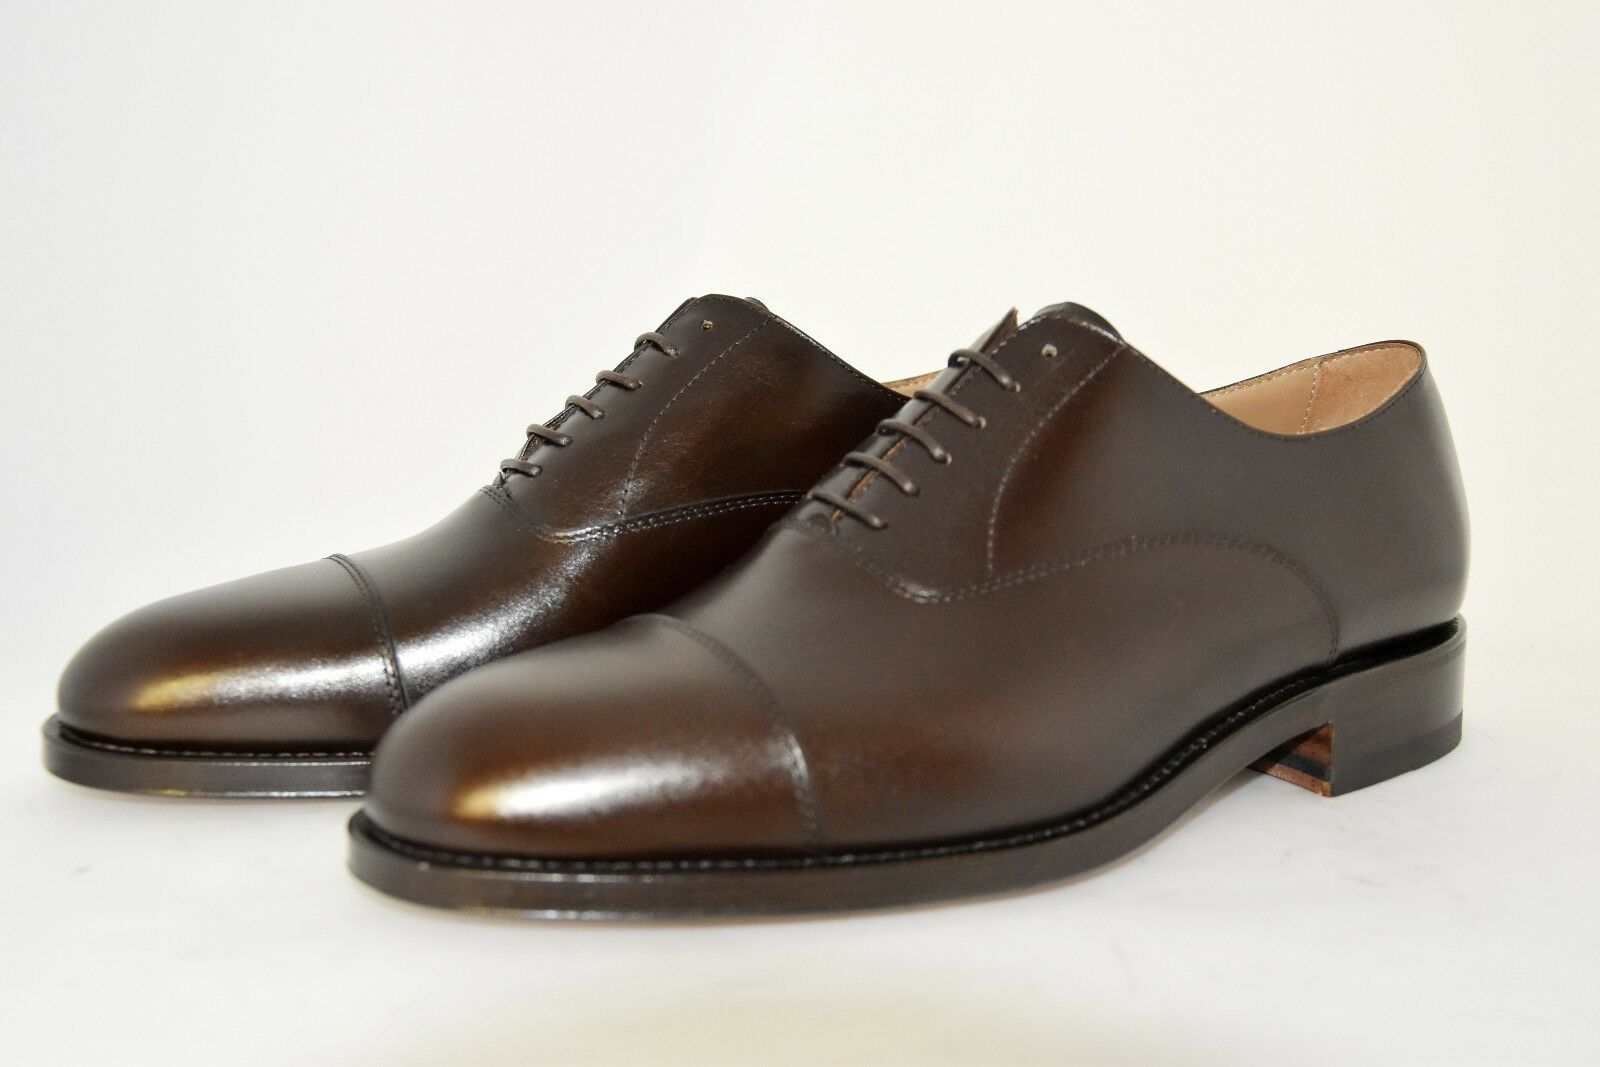 MAN-OXFORD CAPTOE-FRANCESINA-BROWN CALF-VITELLO MARRONE-LEATHER SOLE-SUOLA CUOIO CUOIO SOLE-SUOLA 514fba